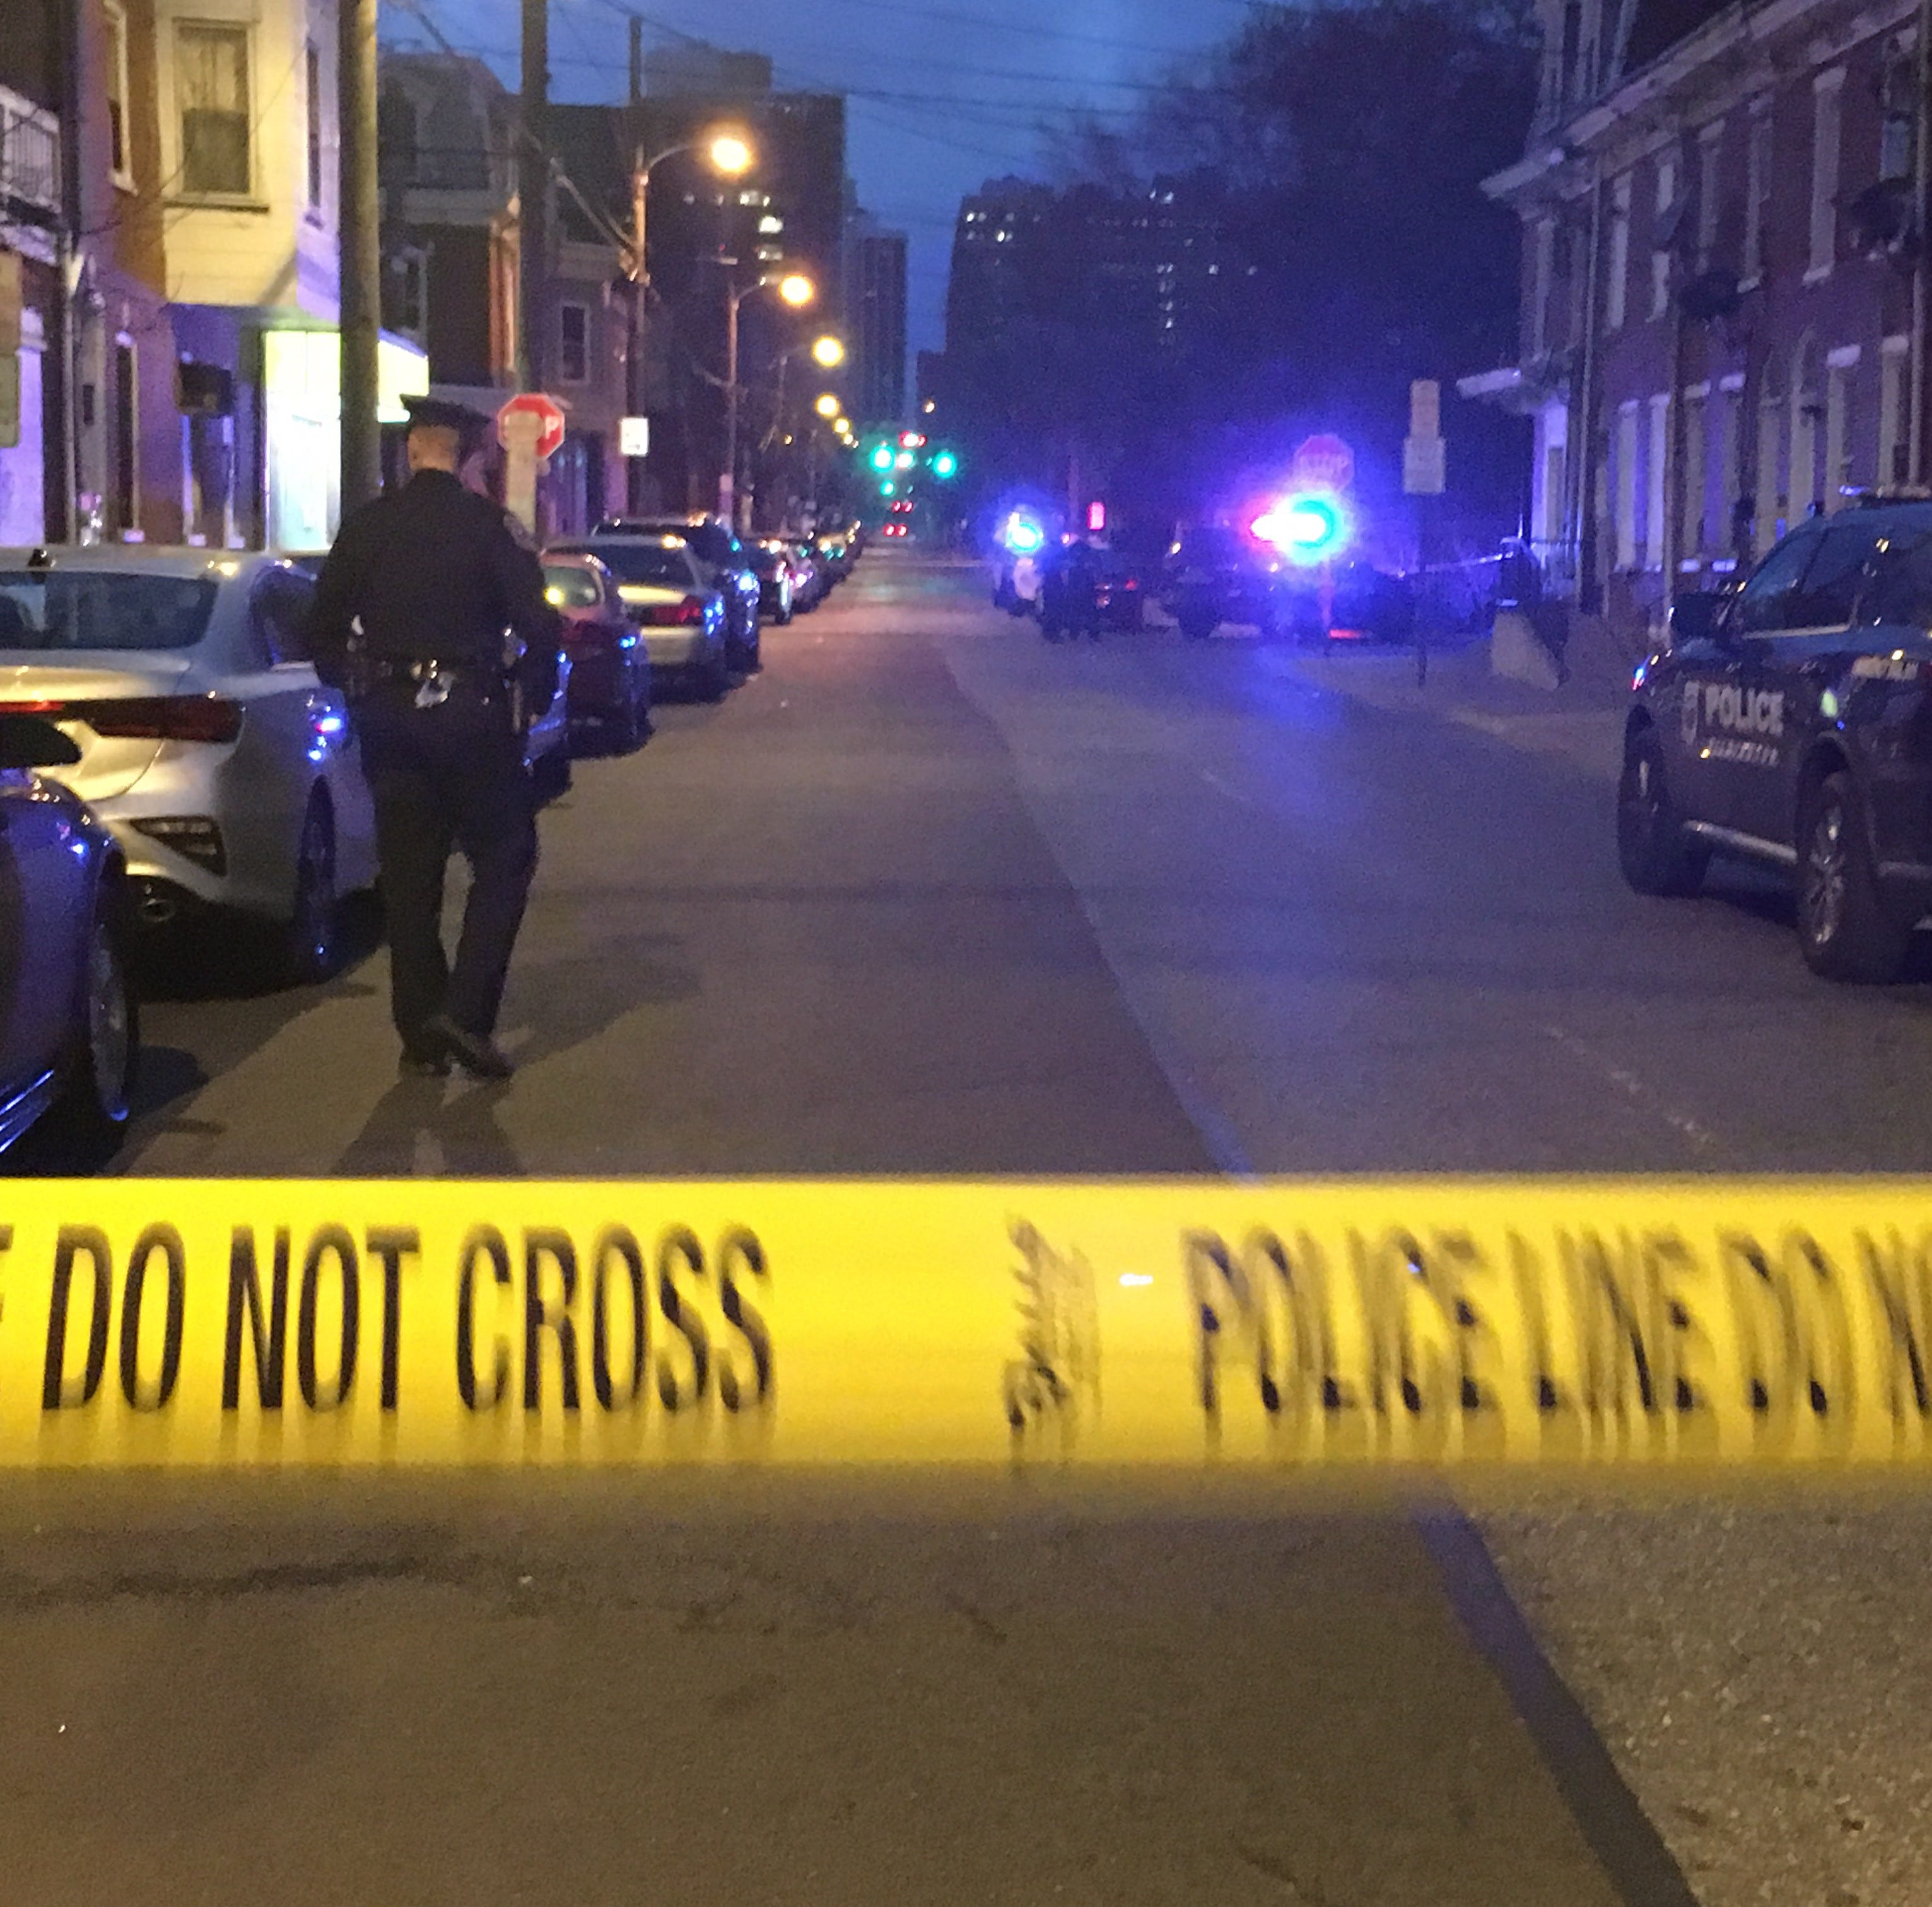 After 6 shot in one incident, Wilmington residents say more needs to be done for city's kids